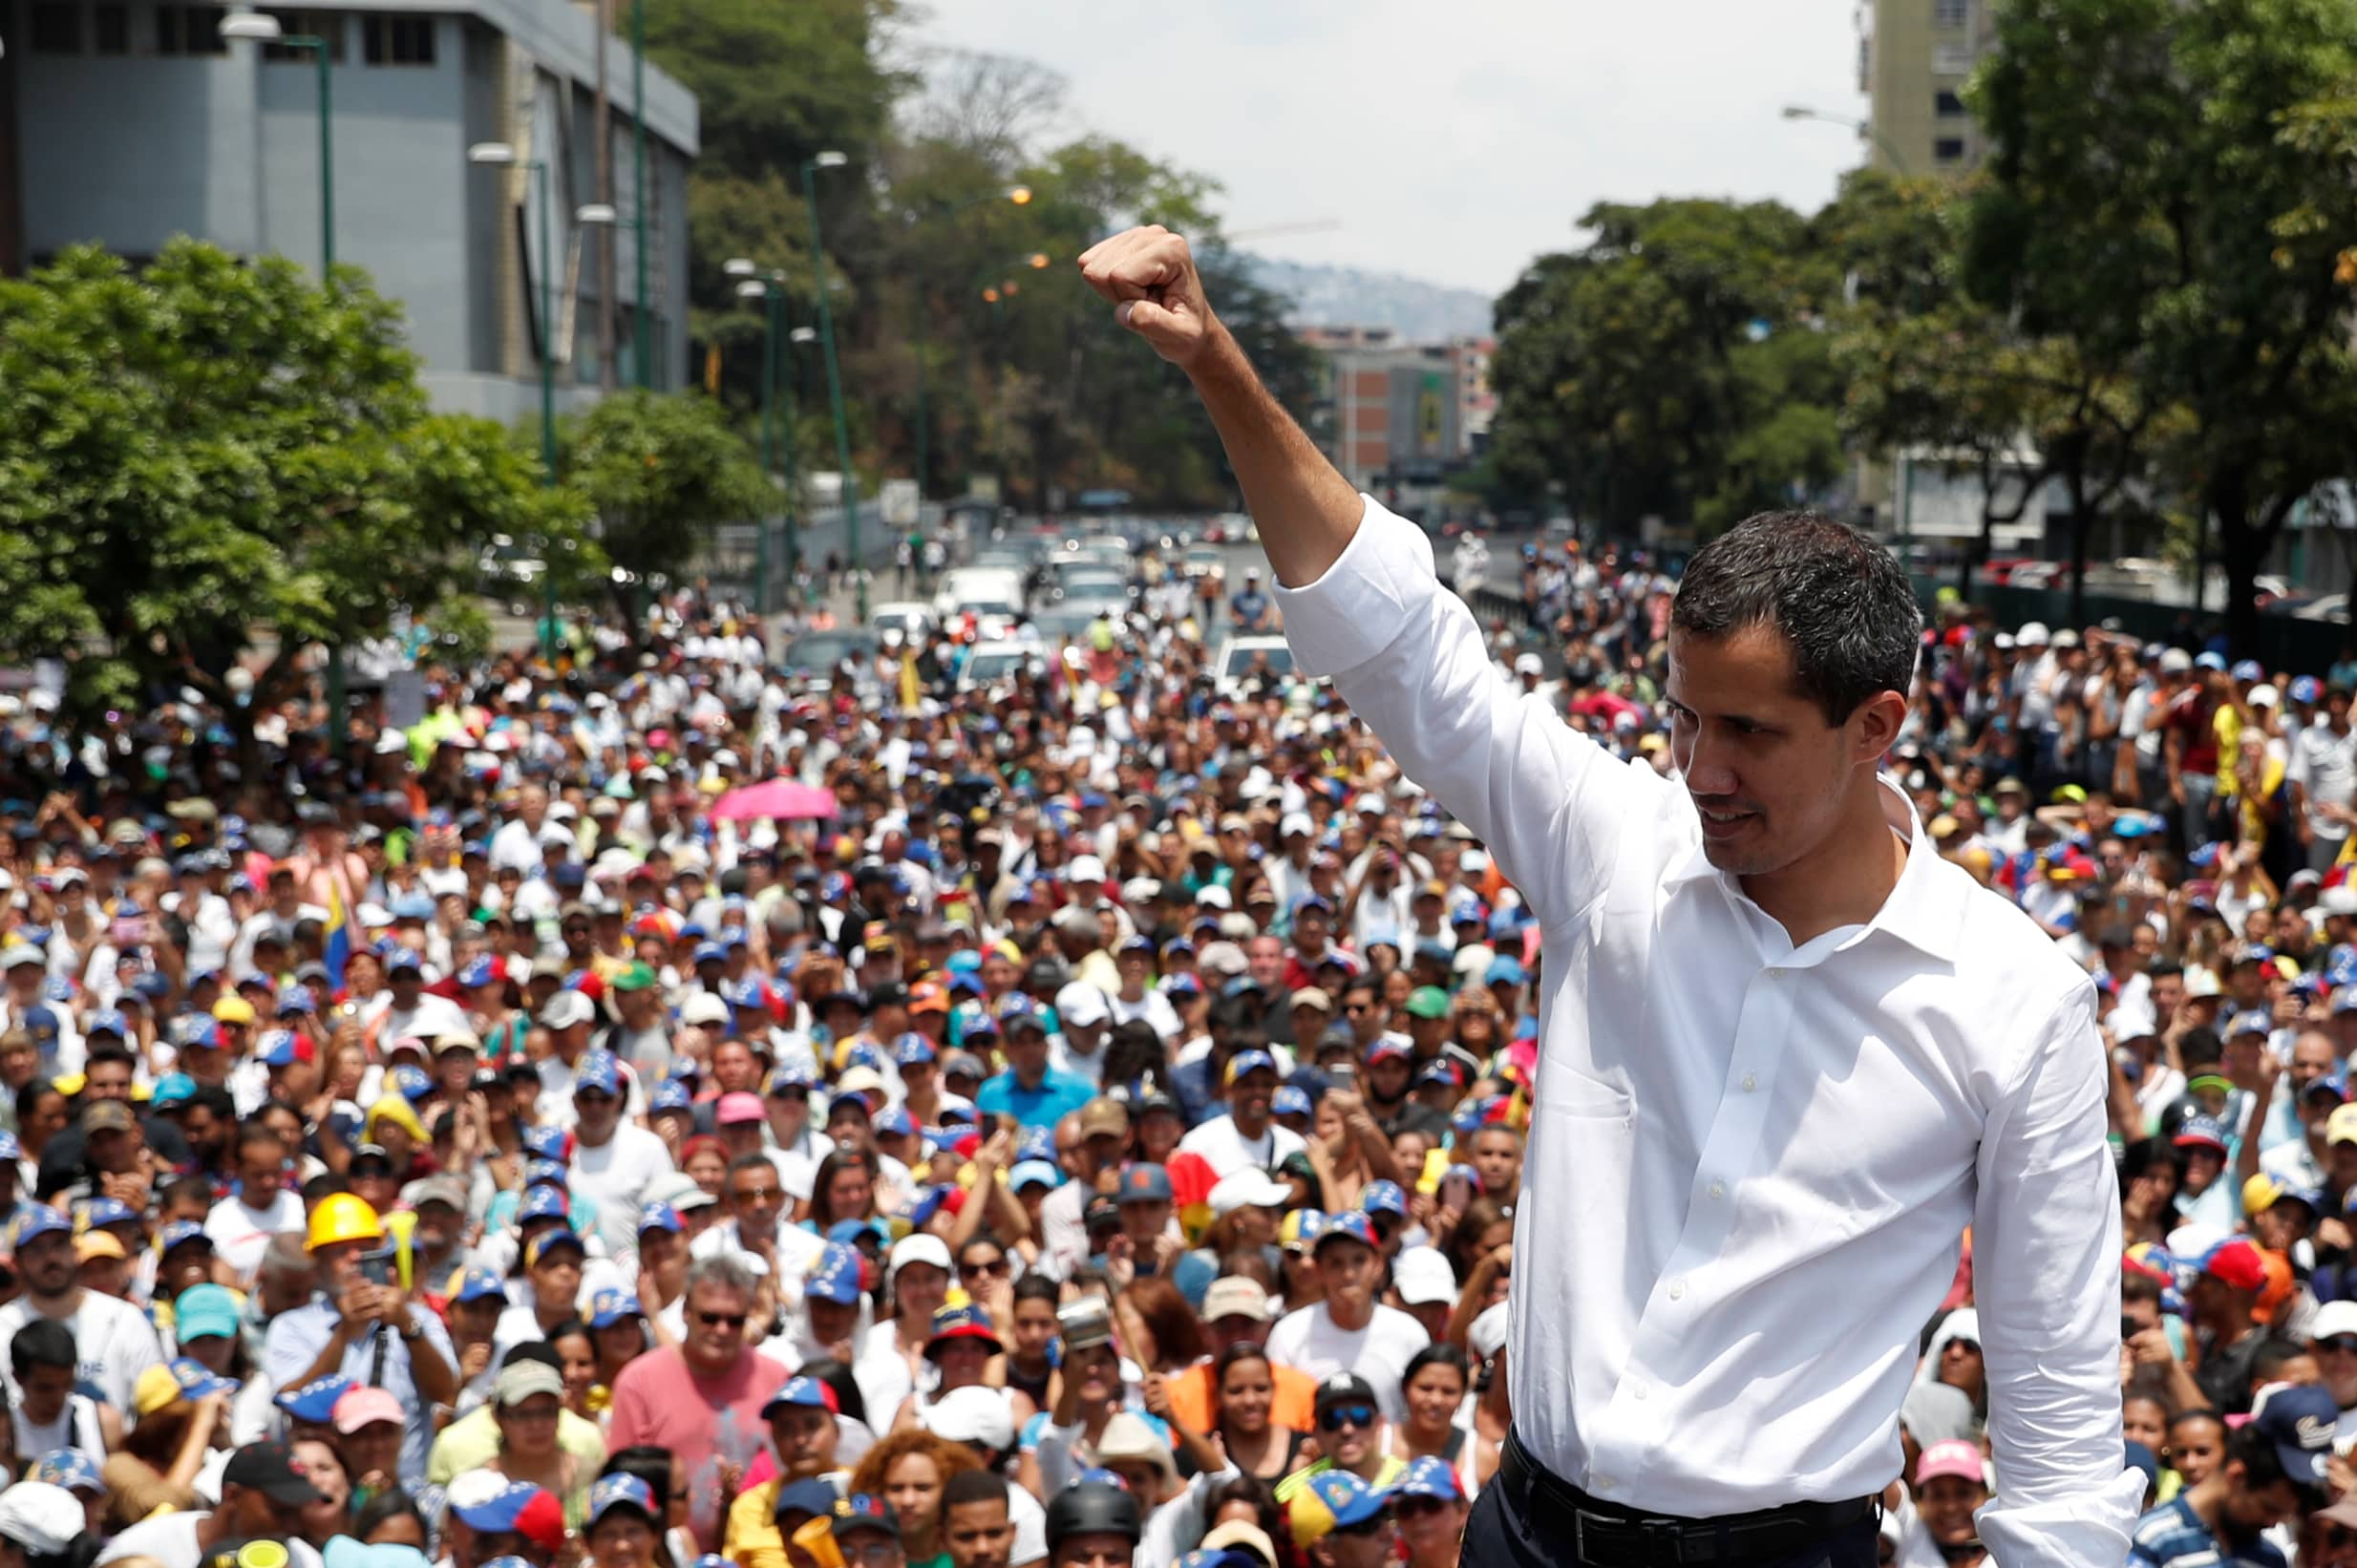 'There's no turning back': Venezuela's Guaido remains defiant after failed attempt to recruit military